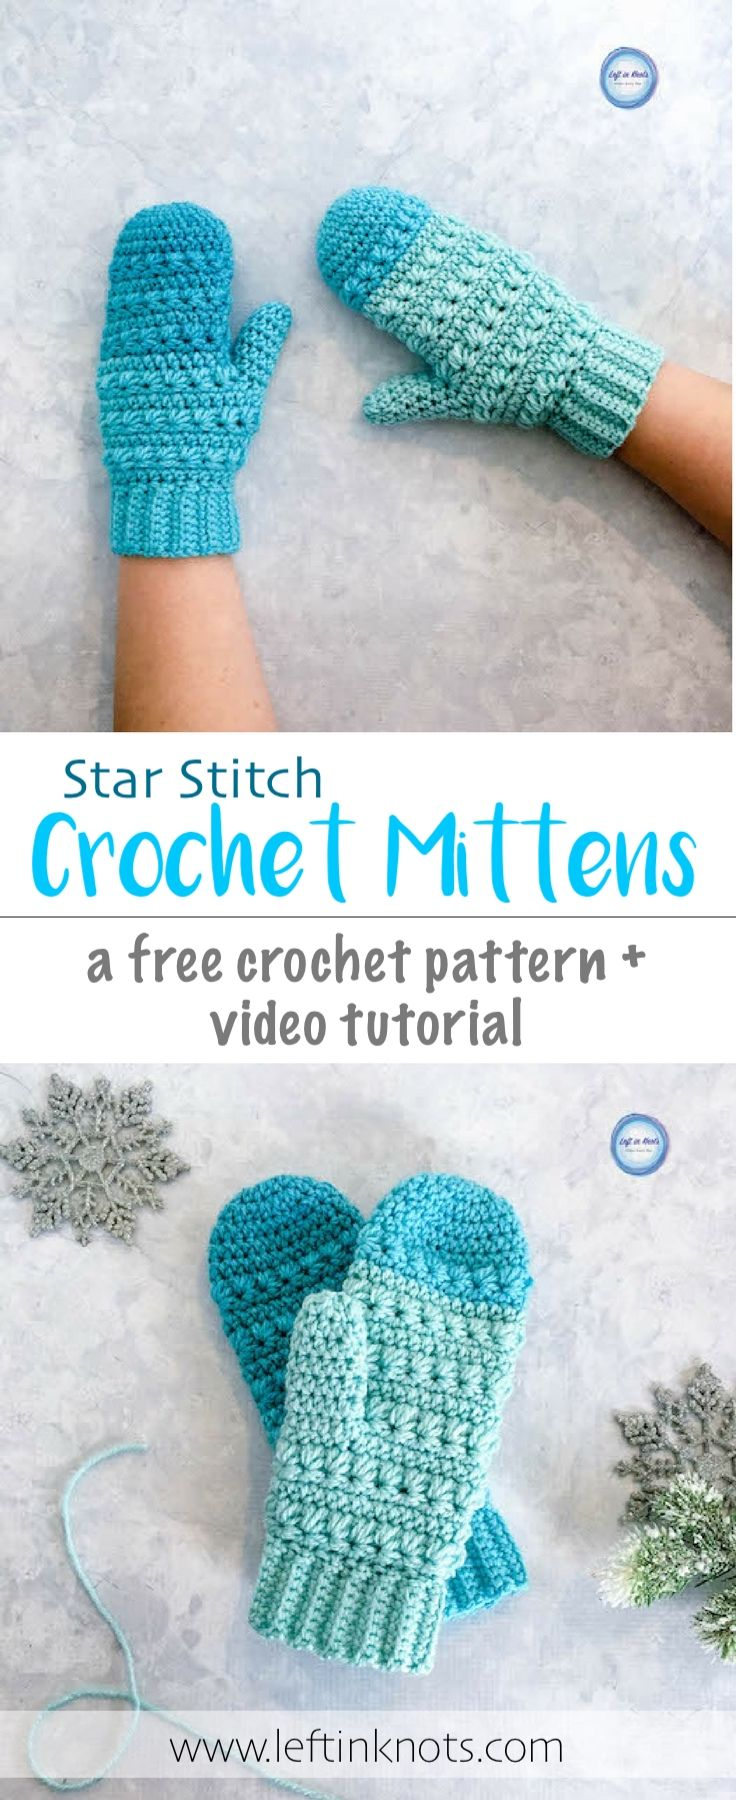 This free crochet pattern uses the star stitch to create beautiful crocheted mittens! The Snow Drops mittens are part of a free pattern set including a free slouch hat and a modern triangle scarf pattern too. Make them with Caron Cakes or your favorite worsted weight yarn. #crochet #freecrochetpattern #mittens